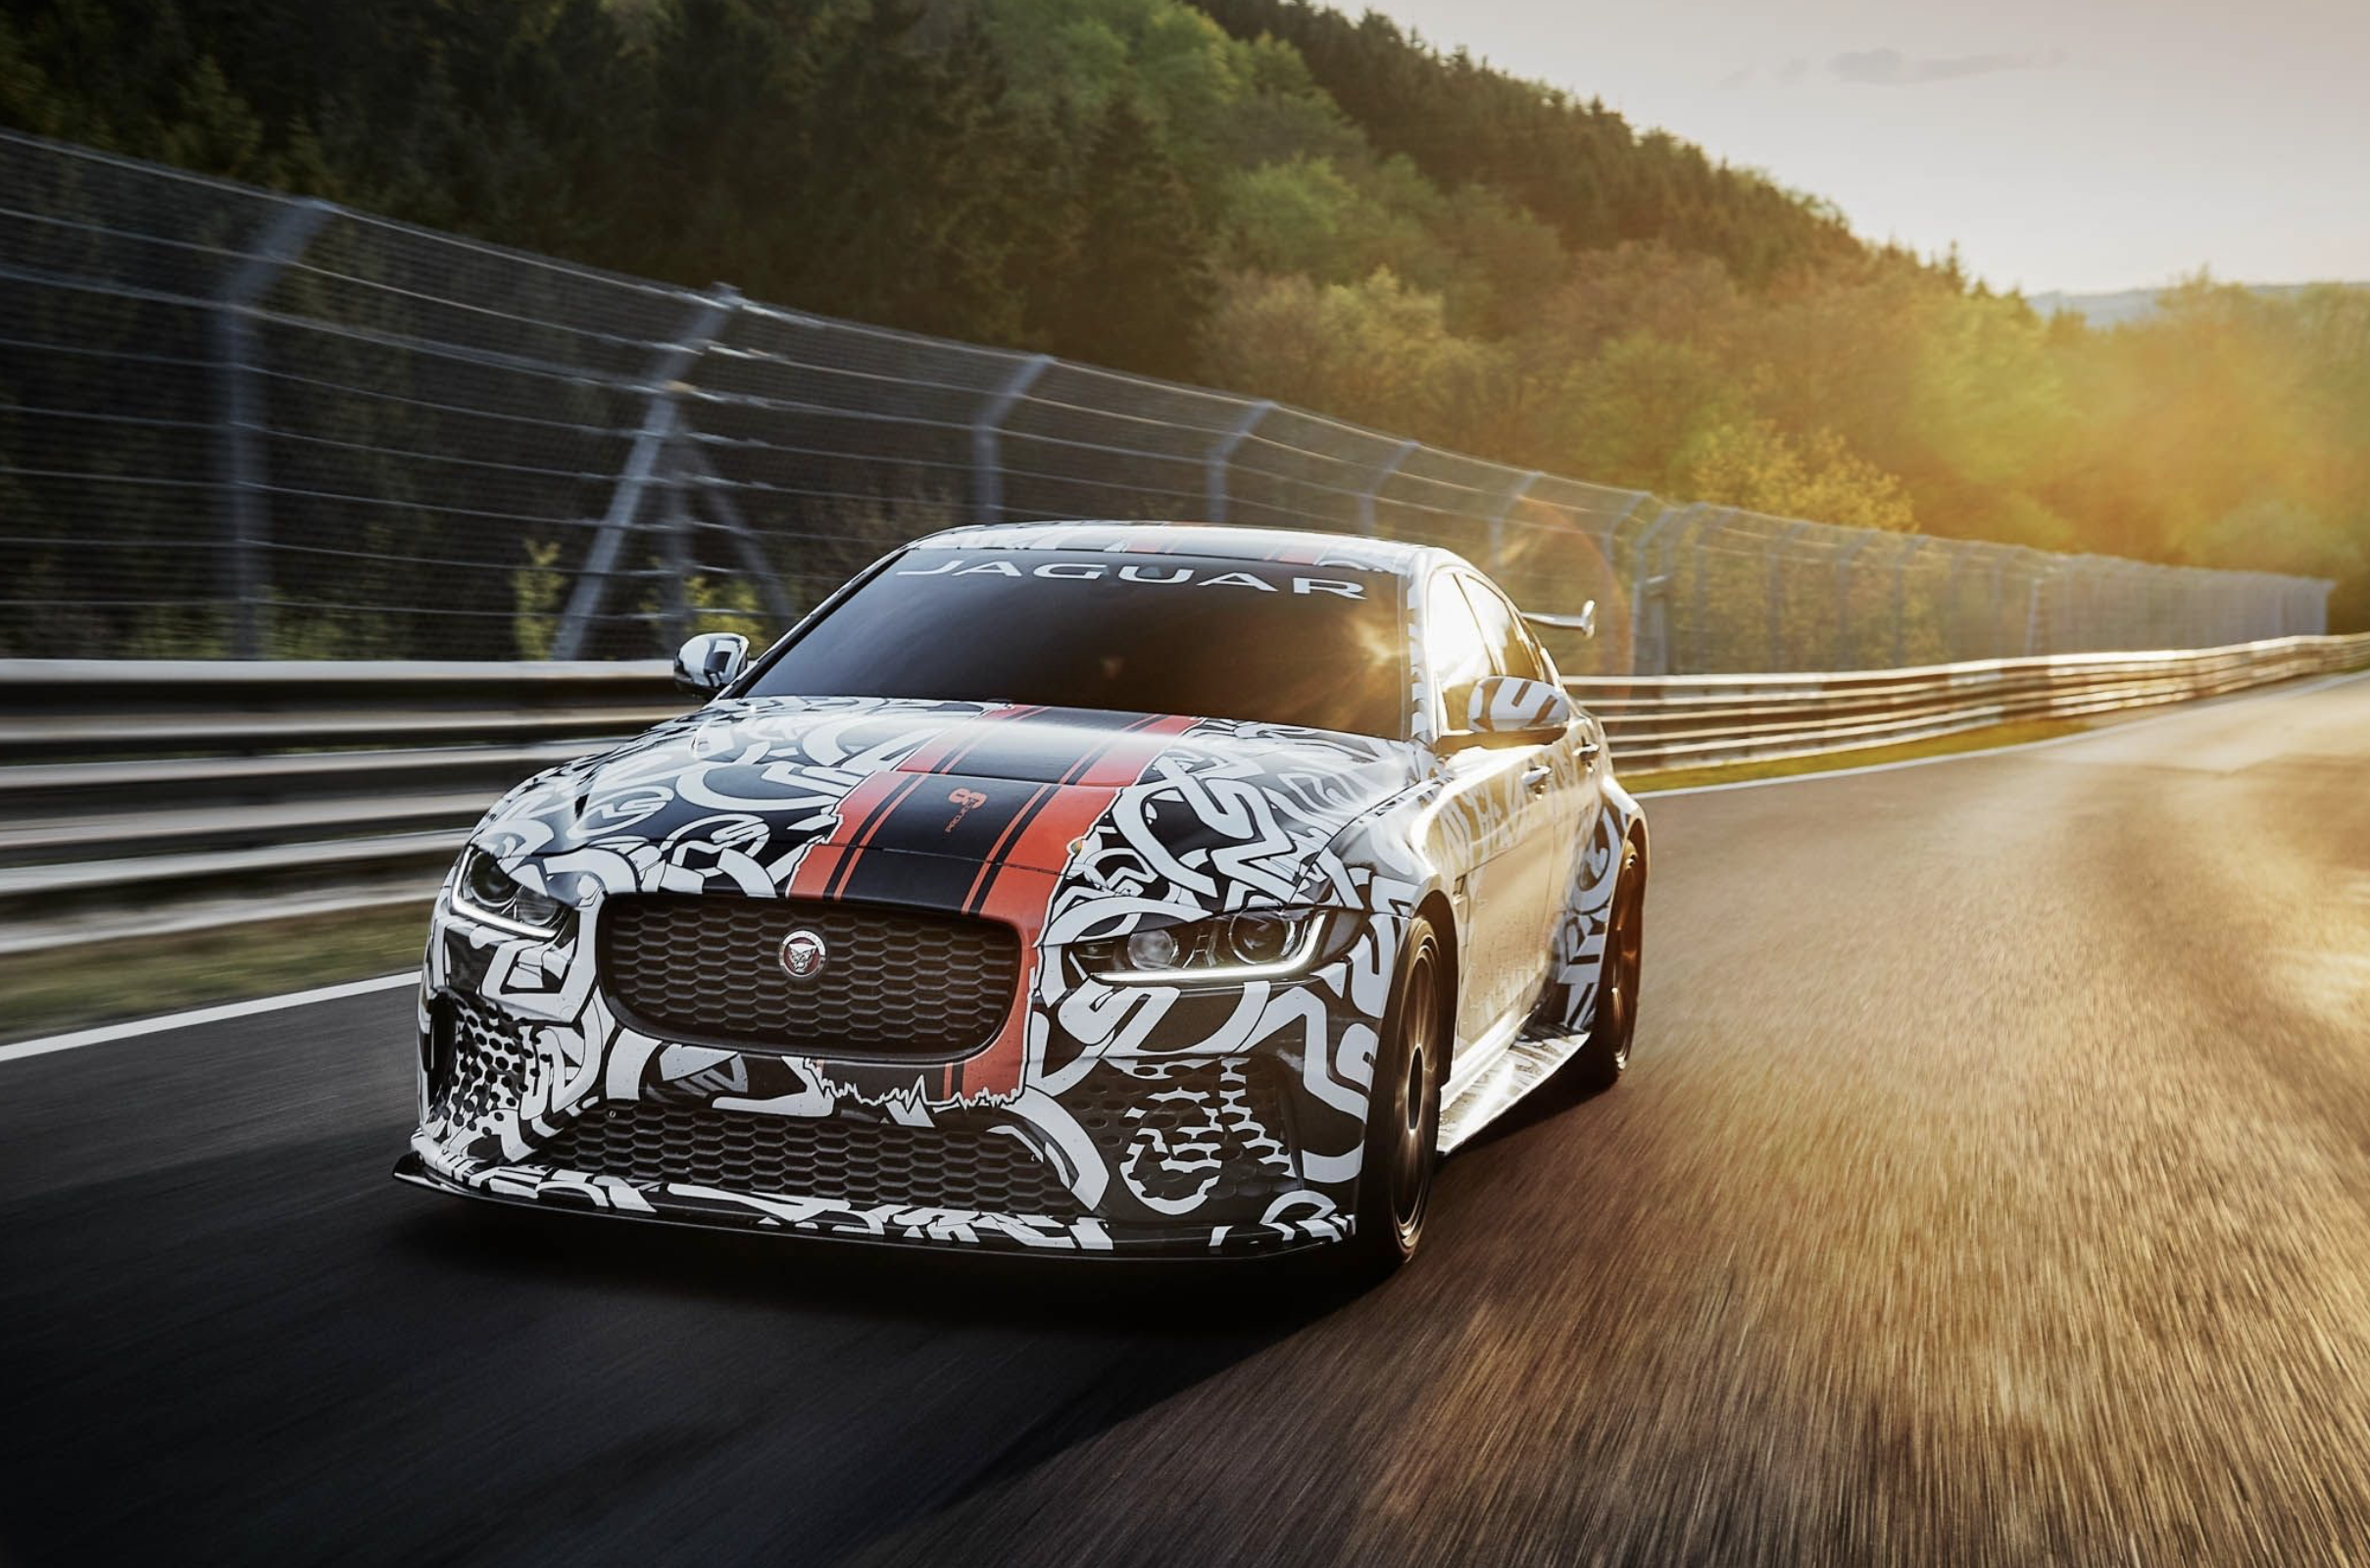 Jaguar XE SV Project 8: The Most Extreme Jaguar Ever